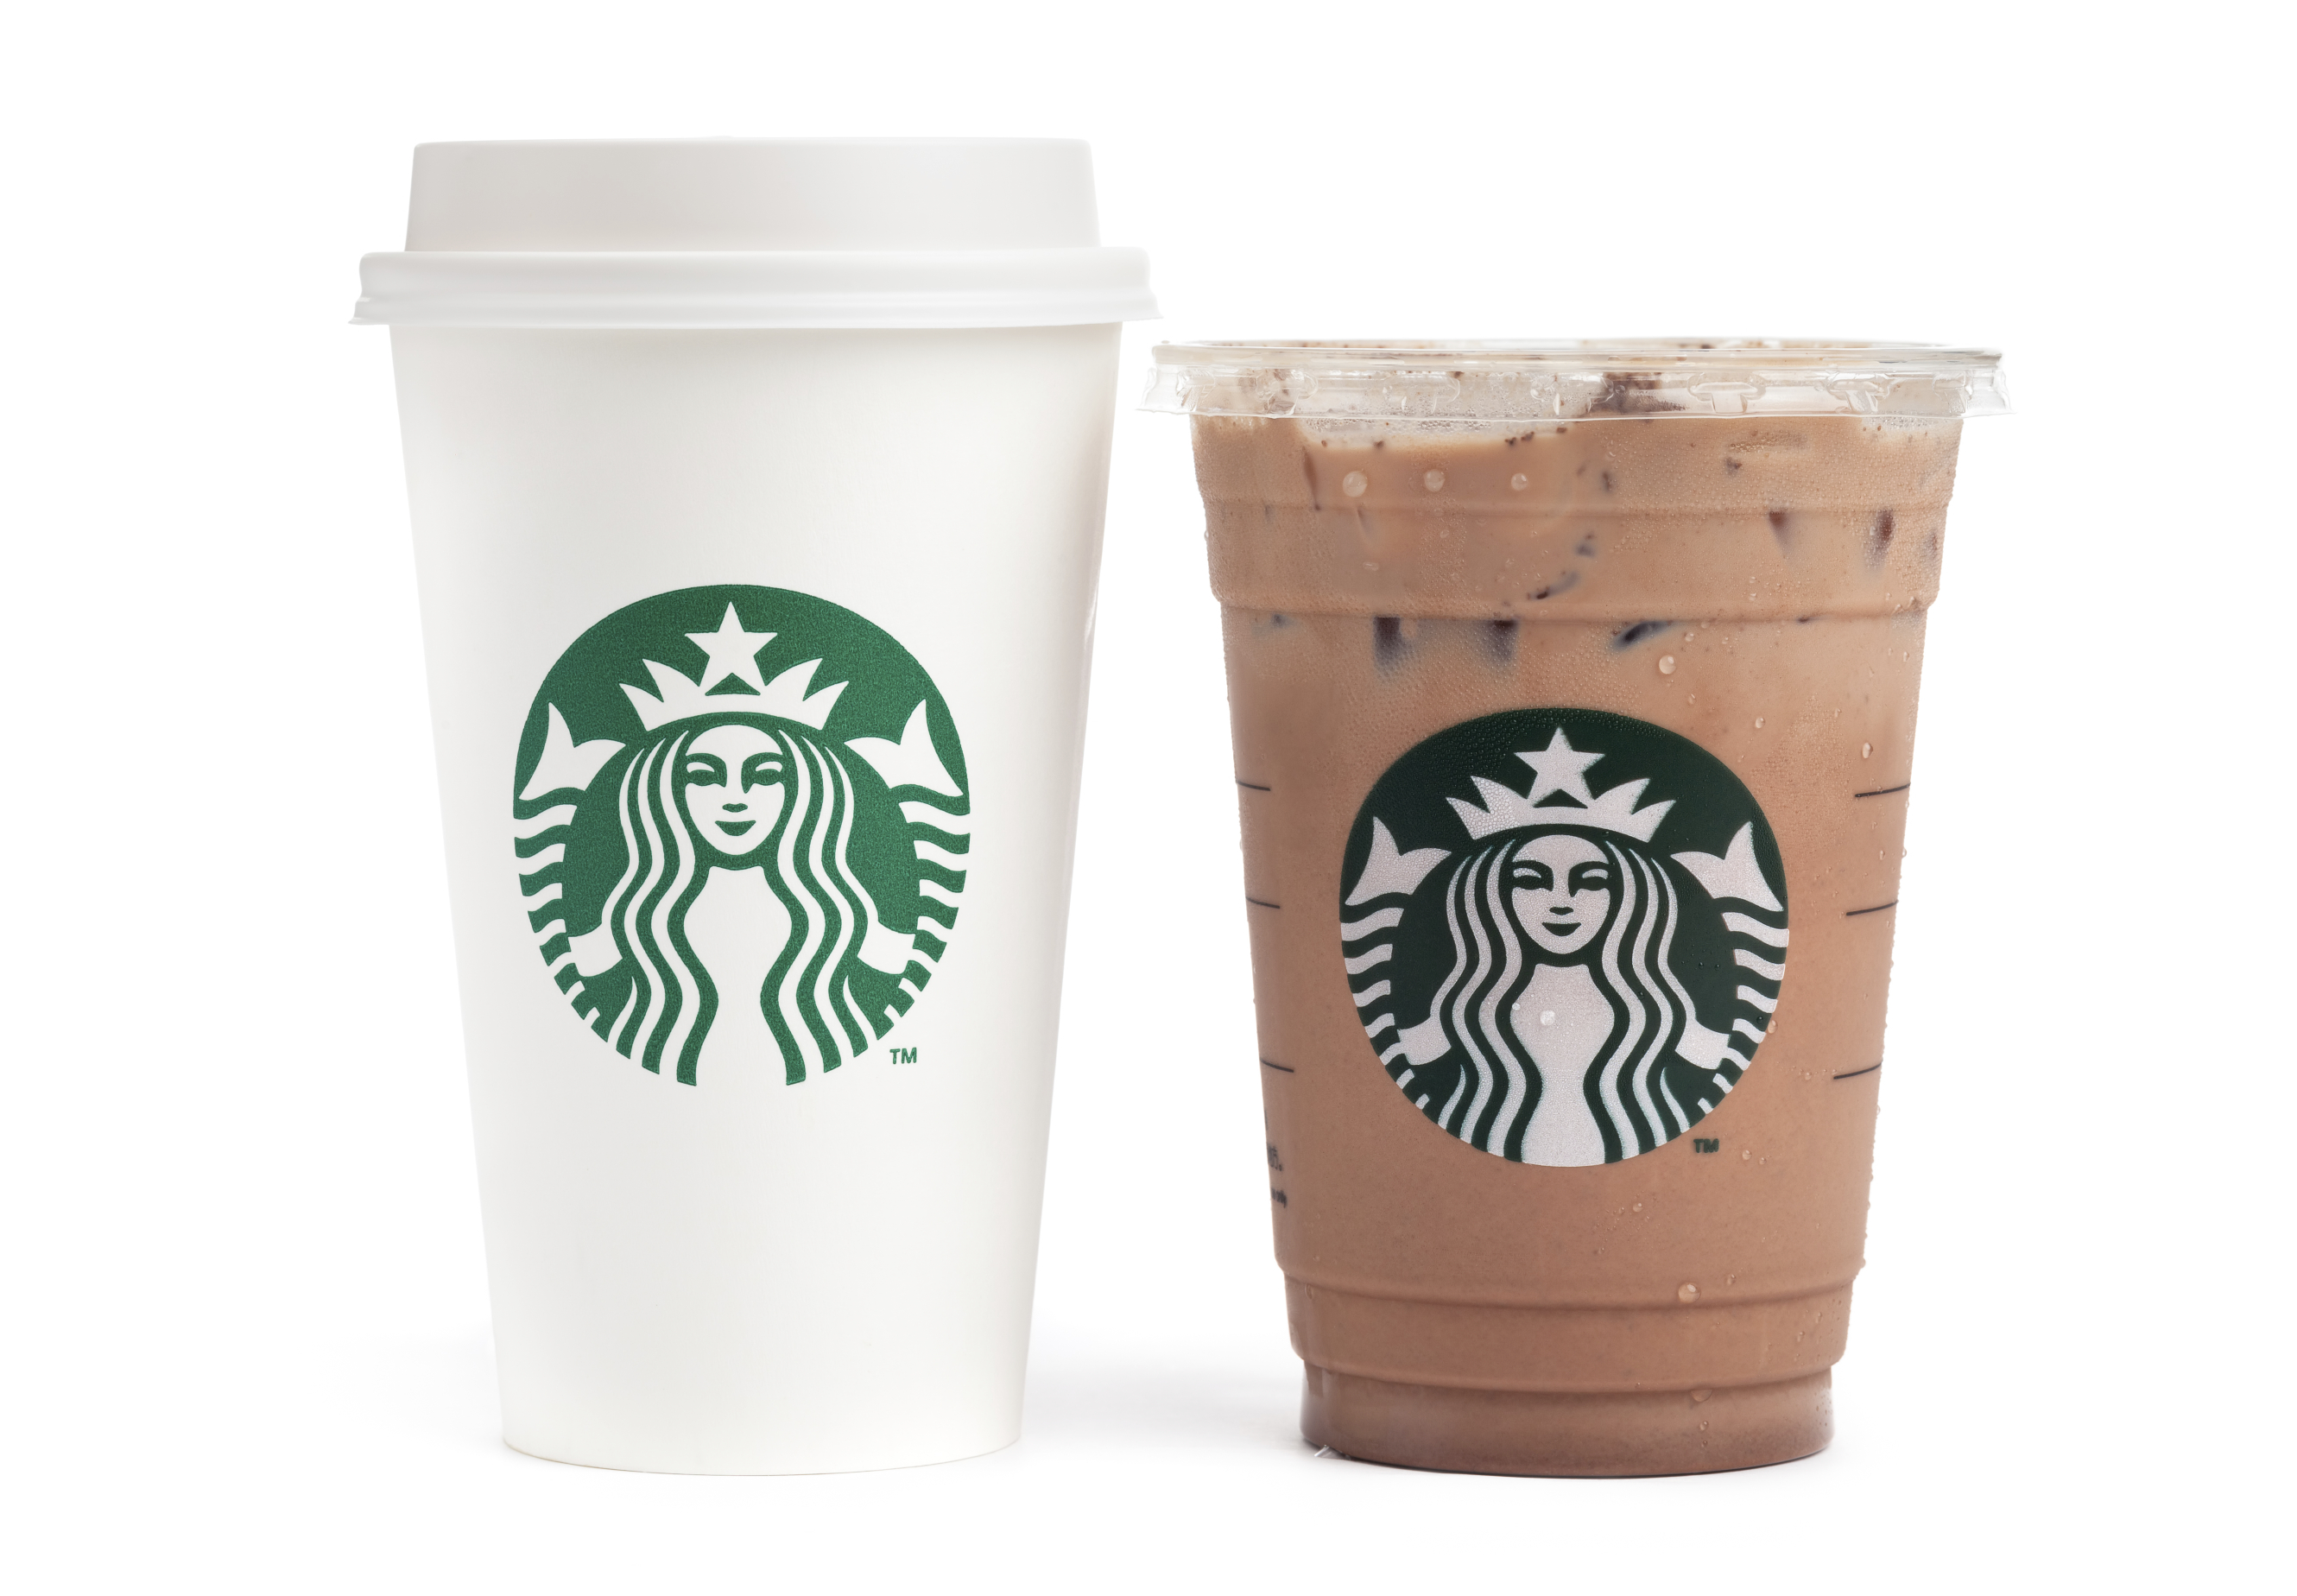 Food Healthy Mcdonalds Nutritionist moreover Starbucks frappuccino unicorn also Taco Bell Menu Prices as well Nutrition Info likewise Coca Cola Statement On Mcdonalds Mccafe Frappe Launch. on starbucks nutrition